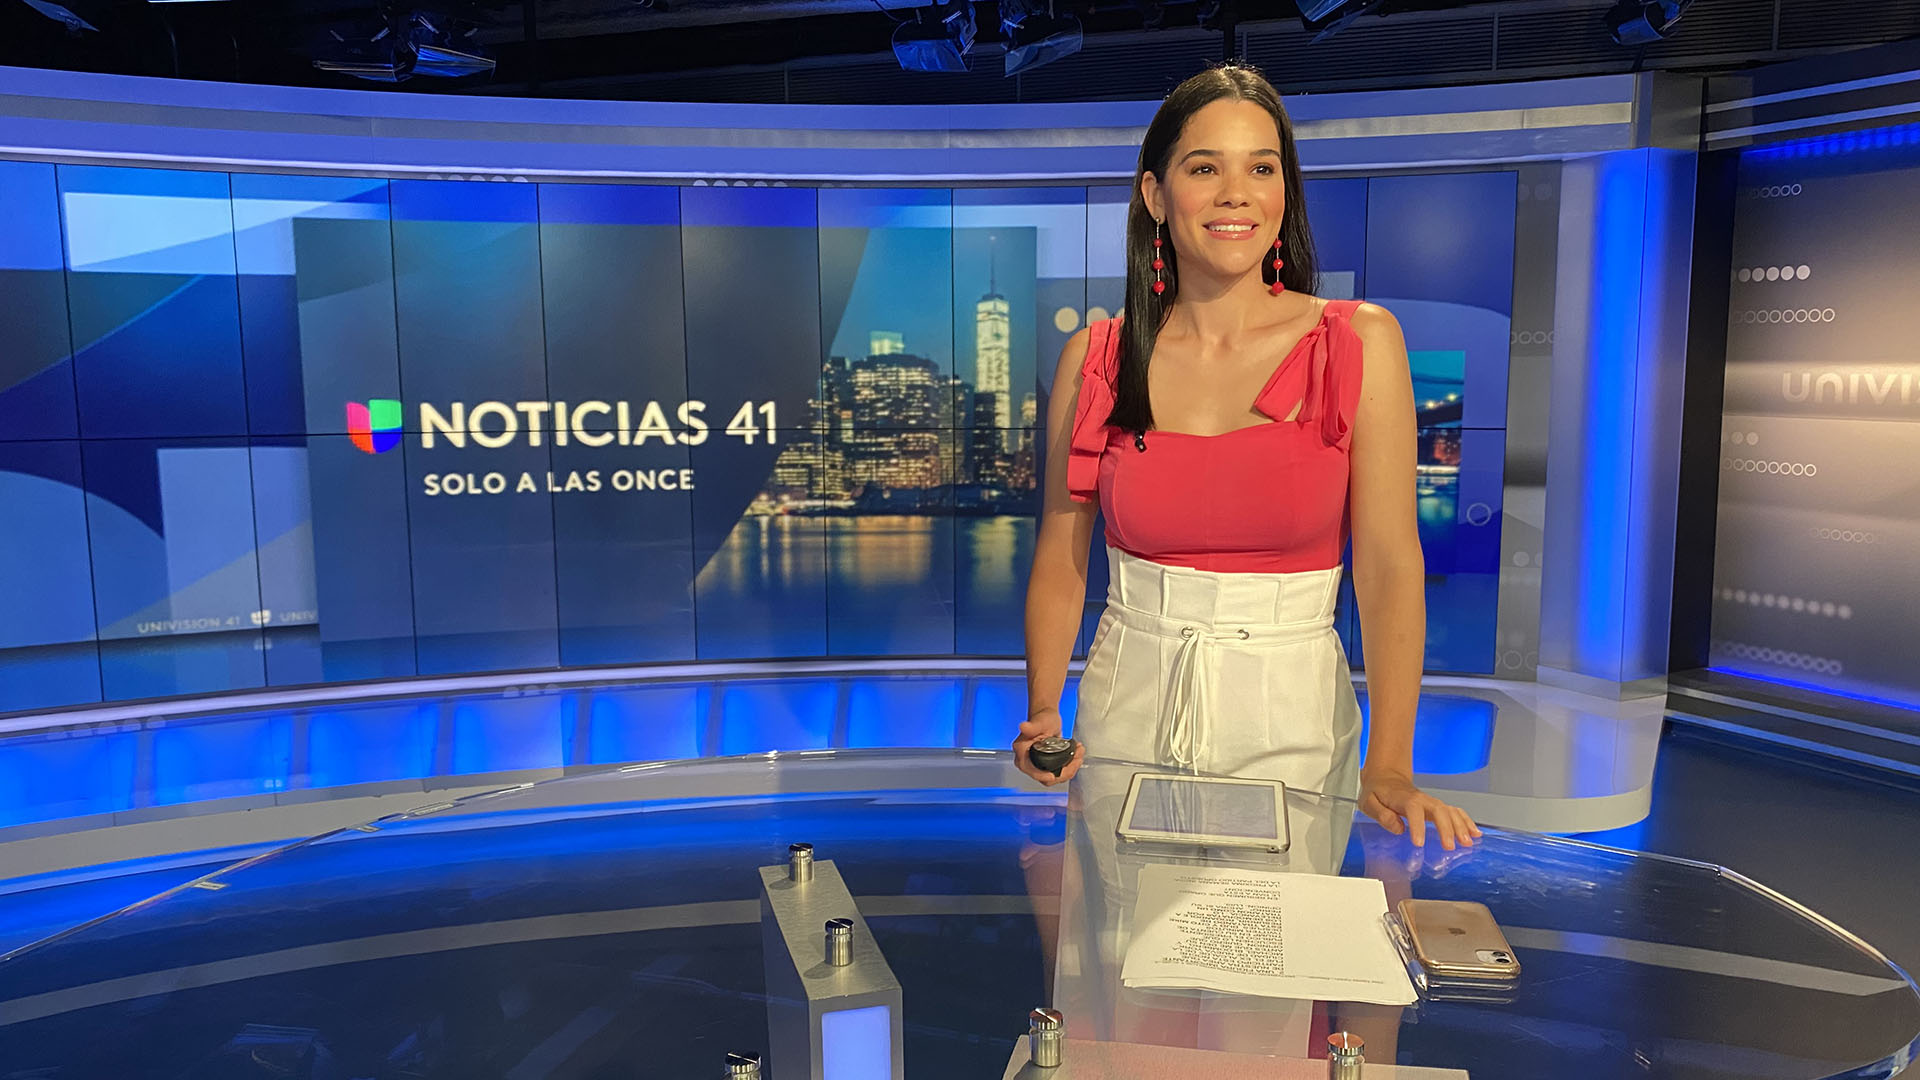 female anchor standing in front of news desk